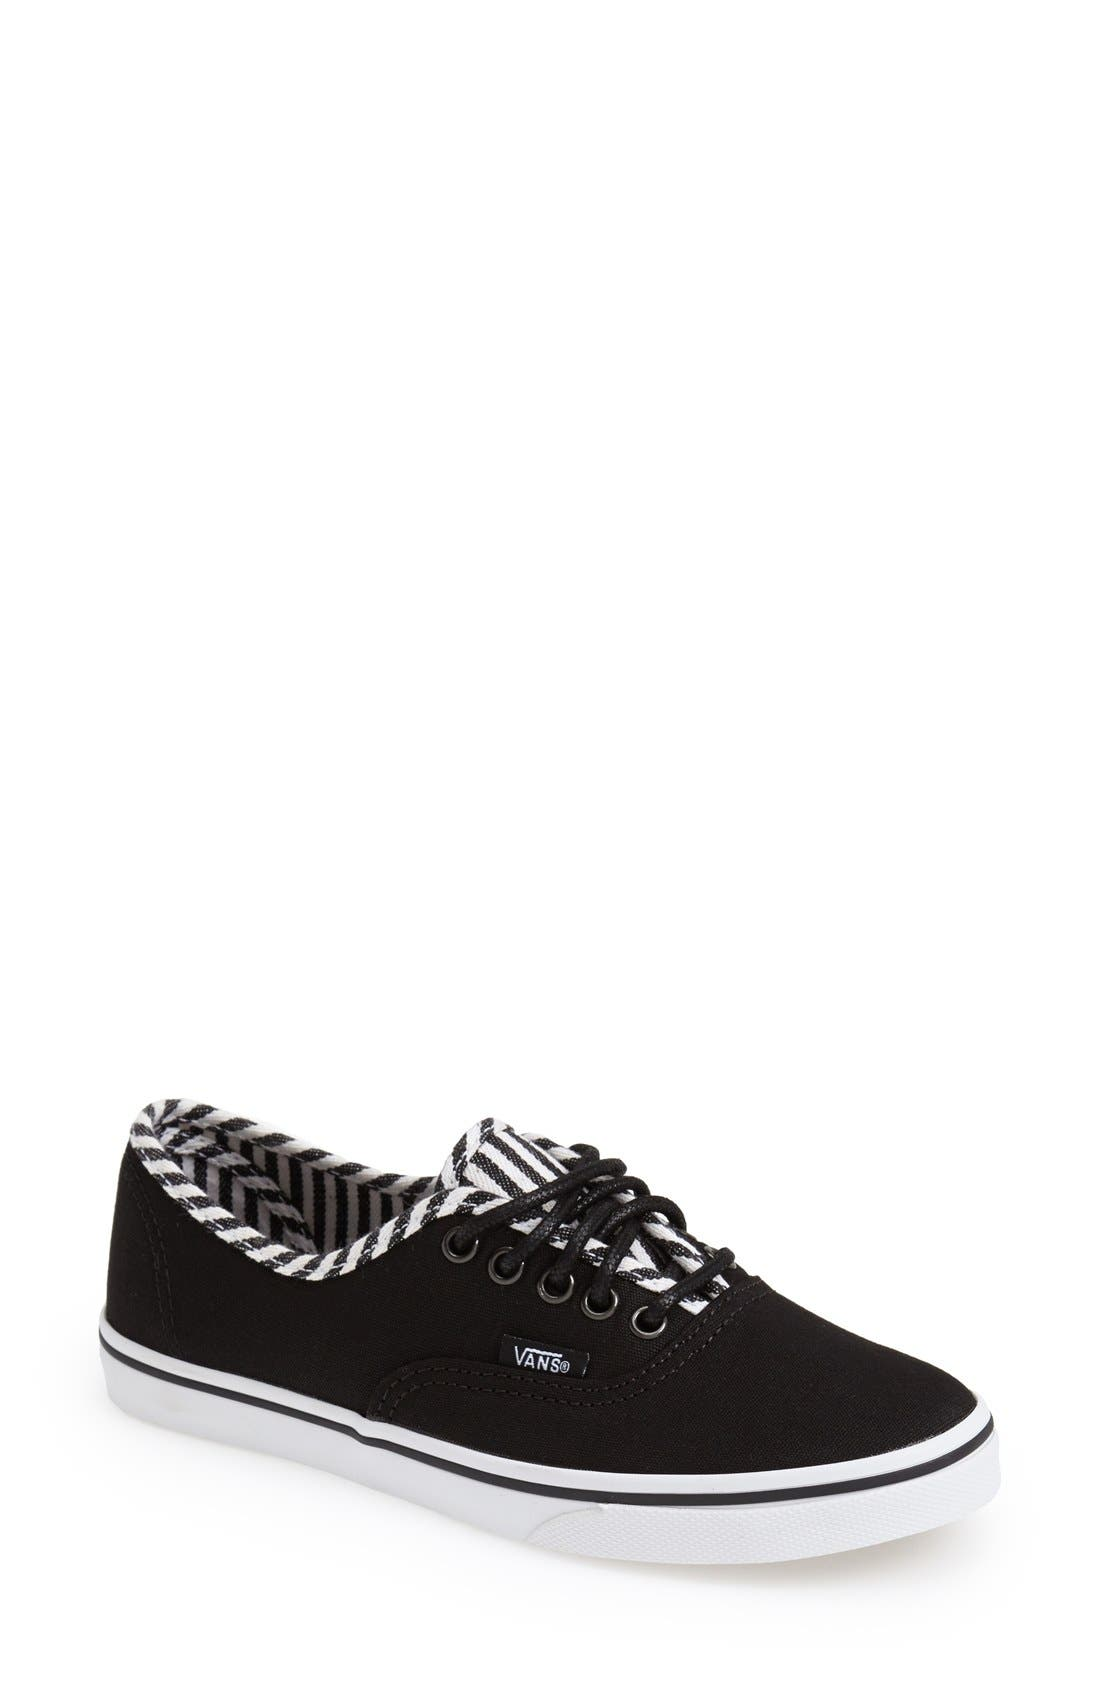 Alternate Image 1 Selected - Vans 'Authentic - Lo Pro Hickory Stripes' Sneaker (Women)